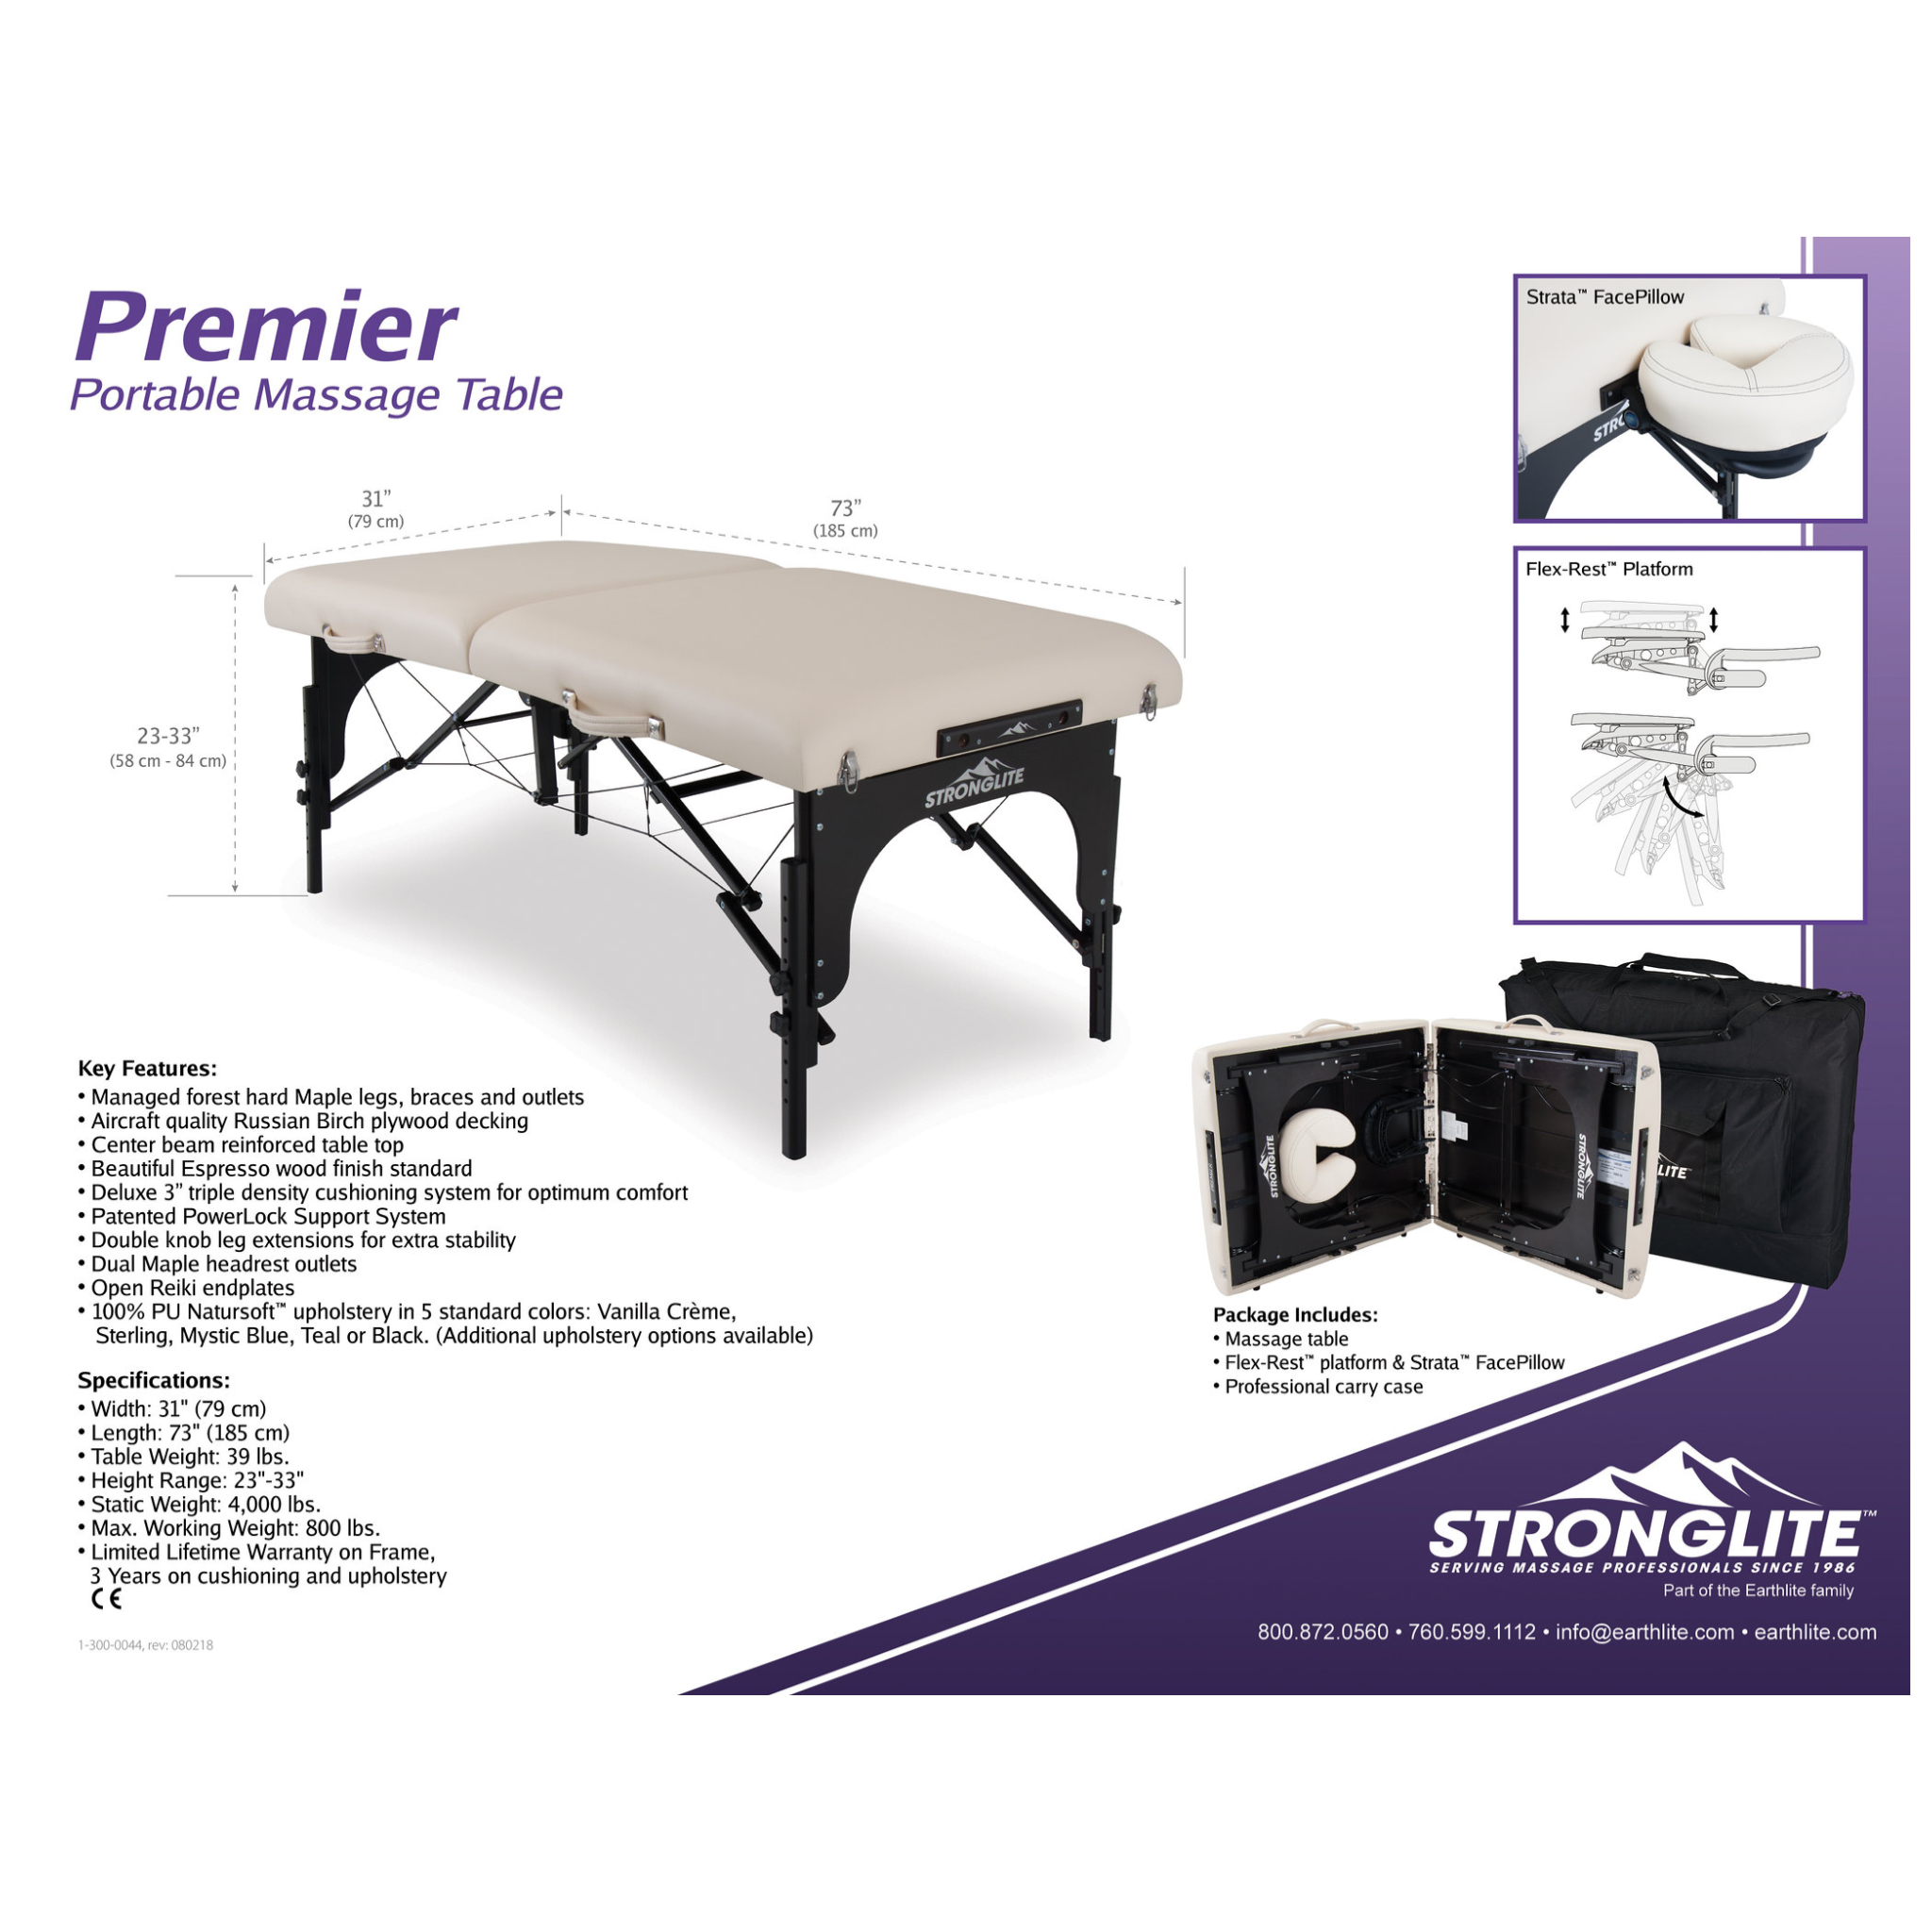 "EarthLite's StrongLite 31"" Massage Table Package"